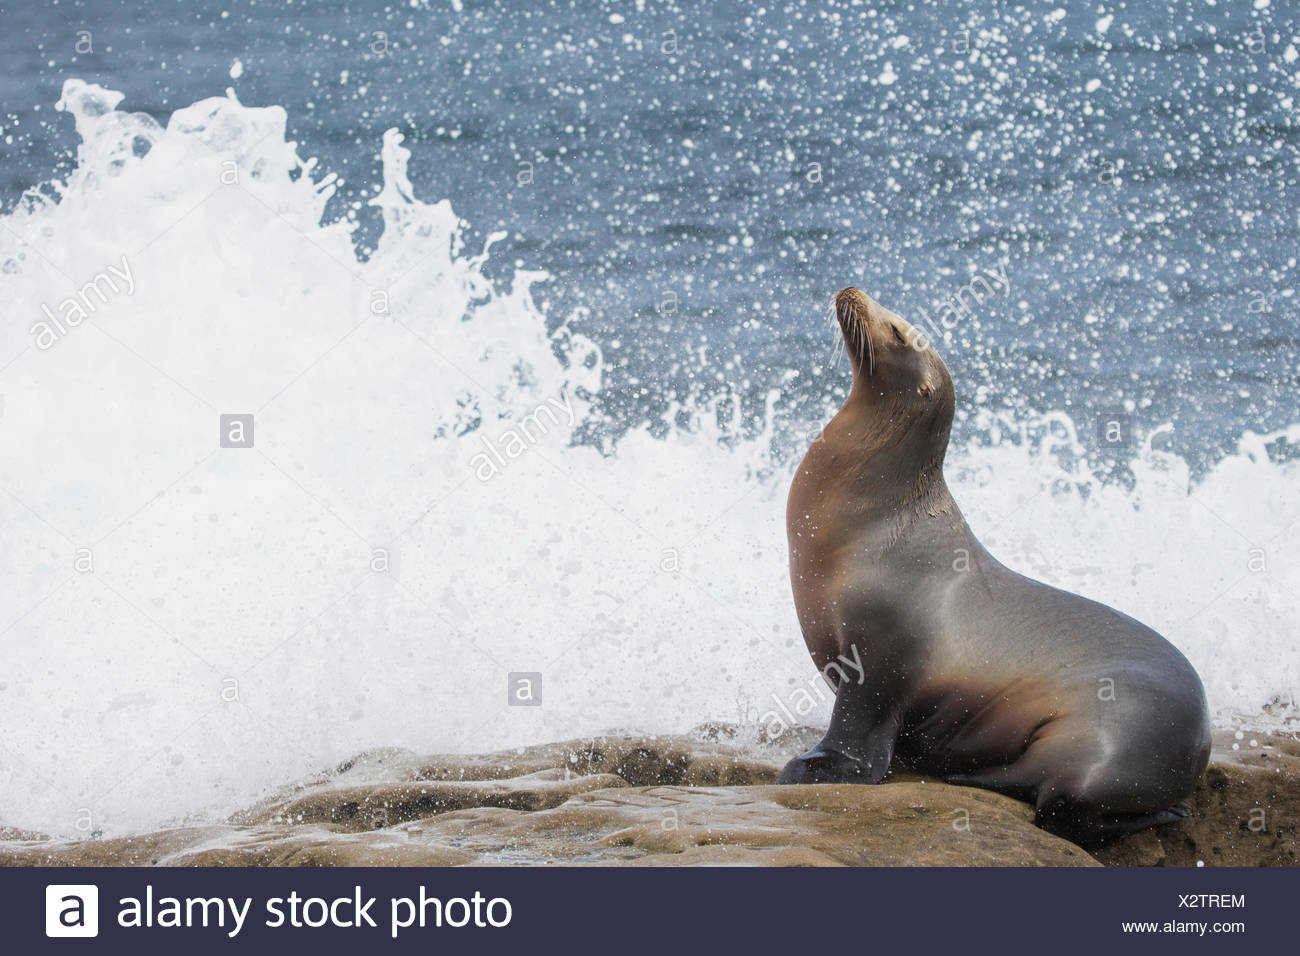 Portrait of a California sea lion, Zalophus californianus, basking in the surf. - Stock Image